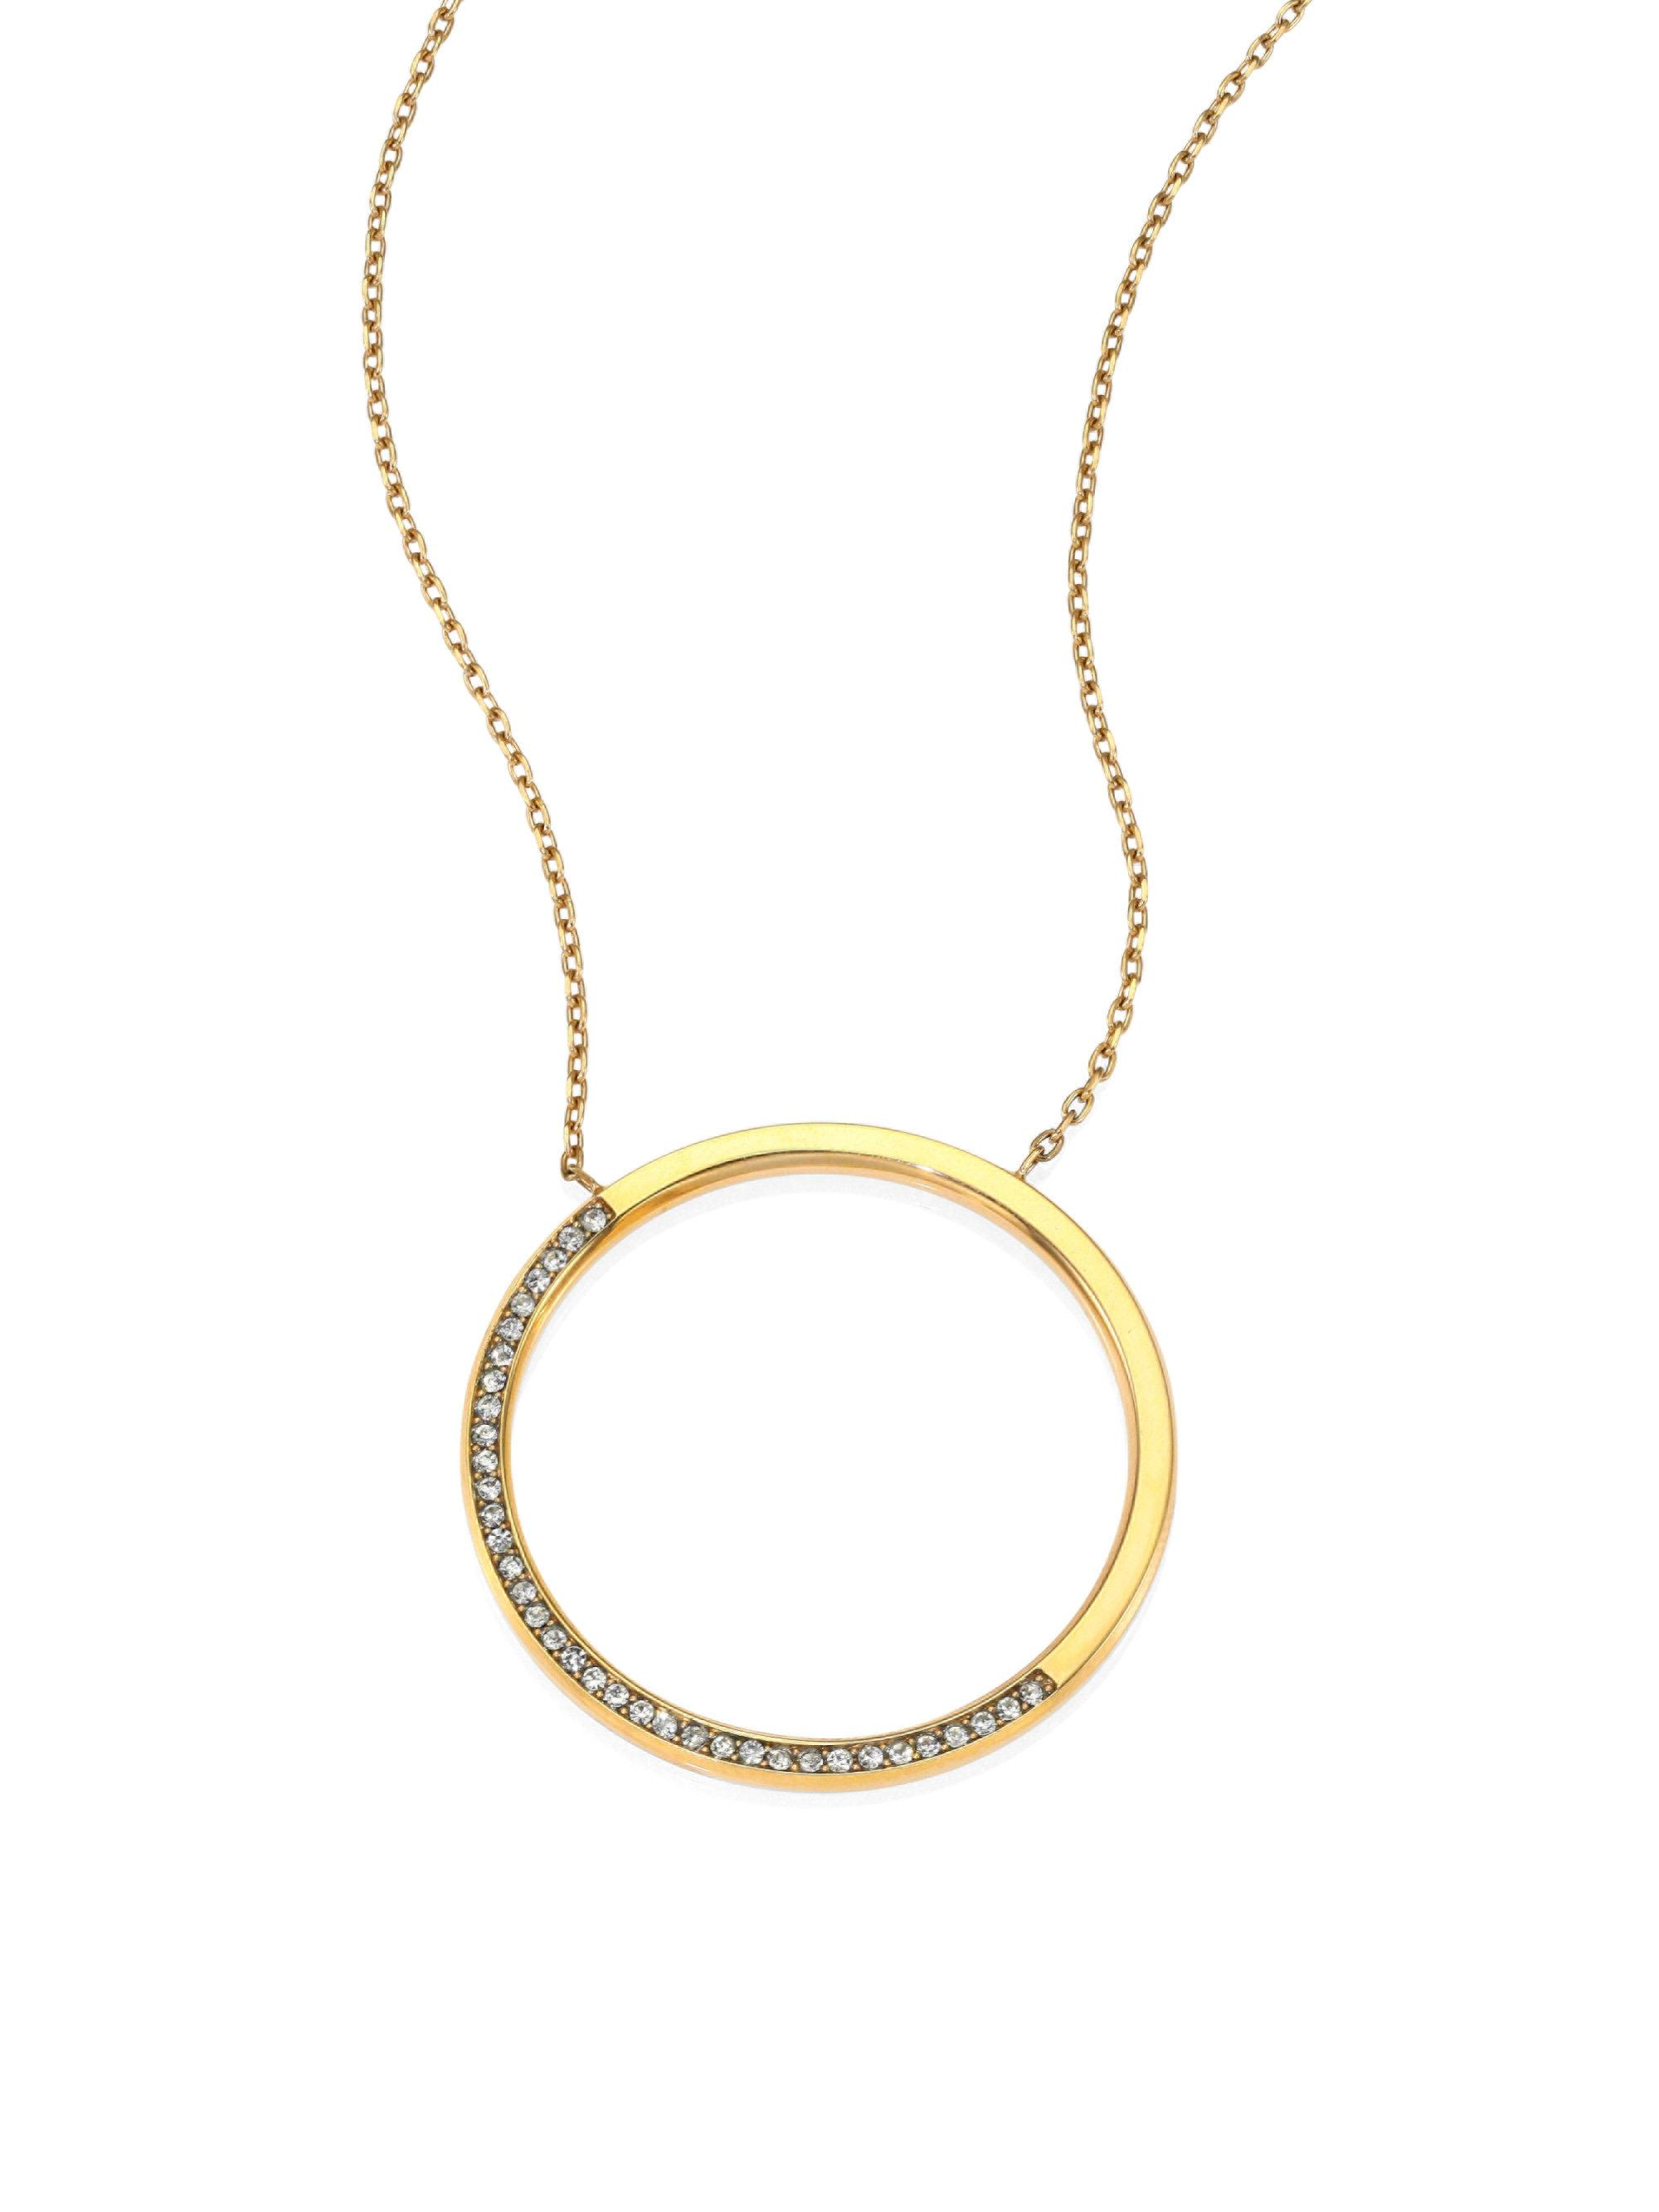 47bff91a70d08 Gallery. Previously sold at  Saks Fifth Avenue · Women s Michael Kors  Pendant